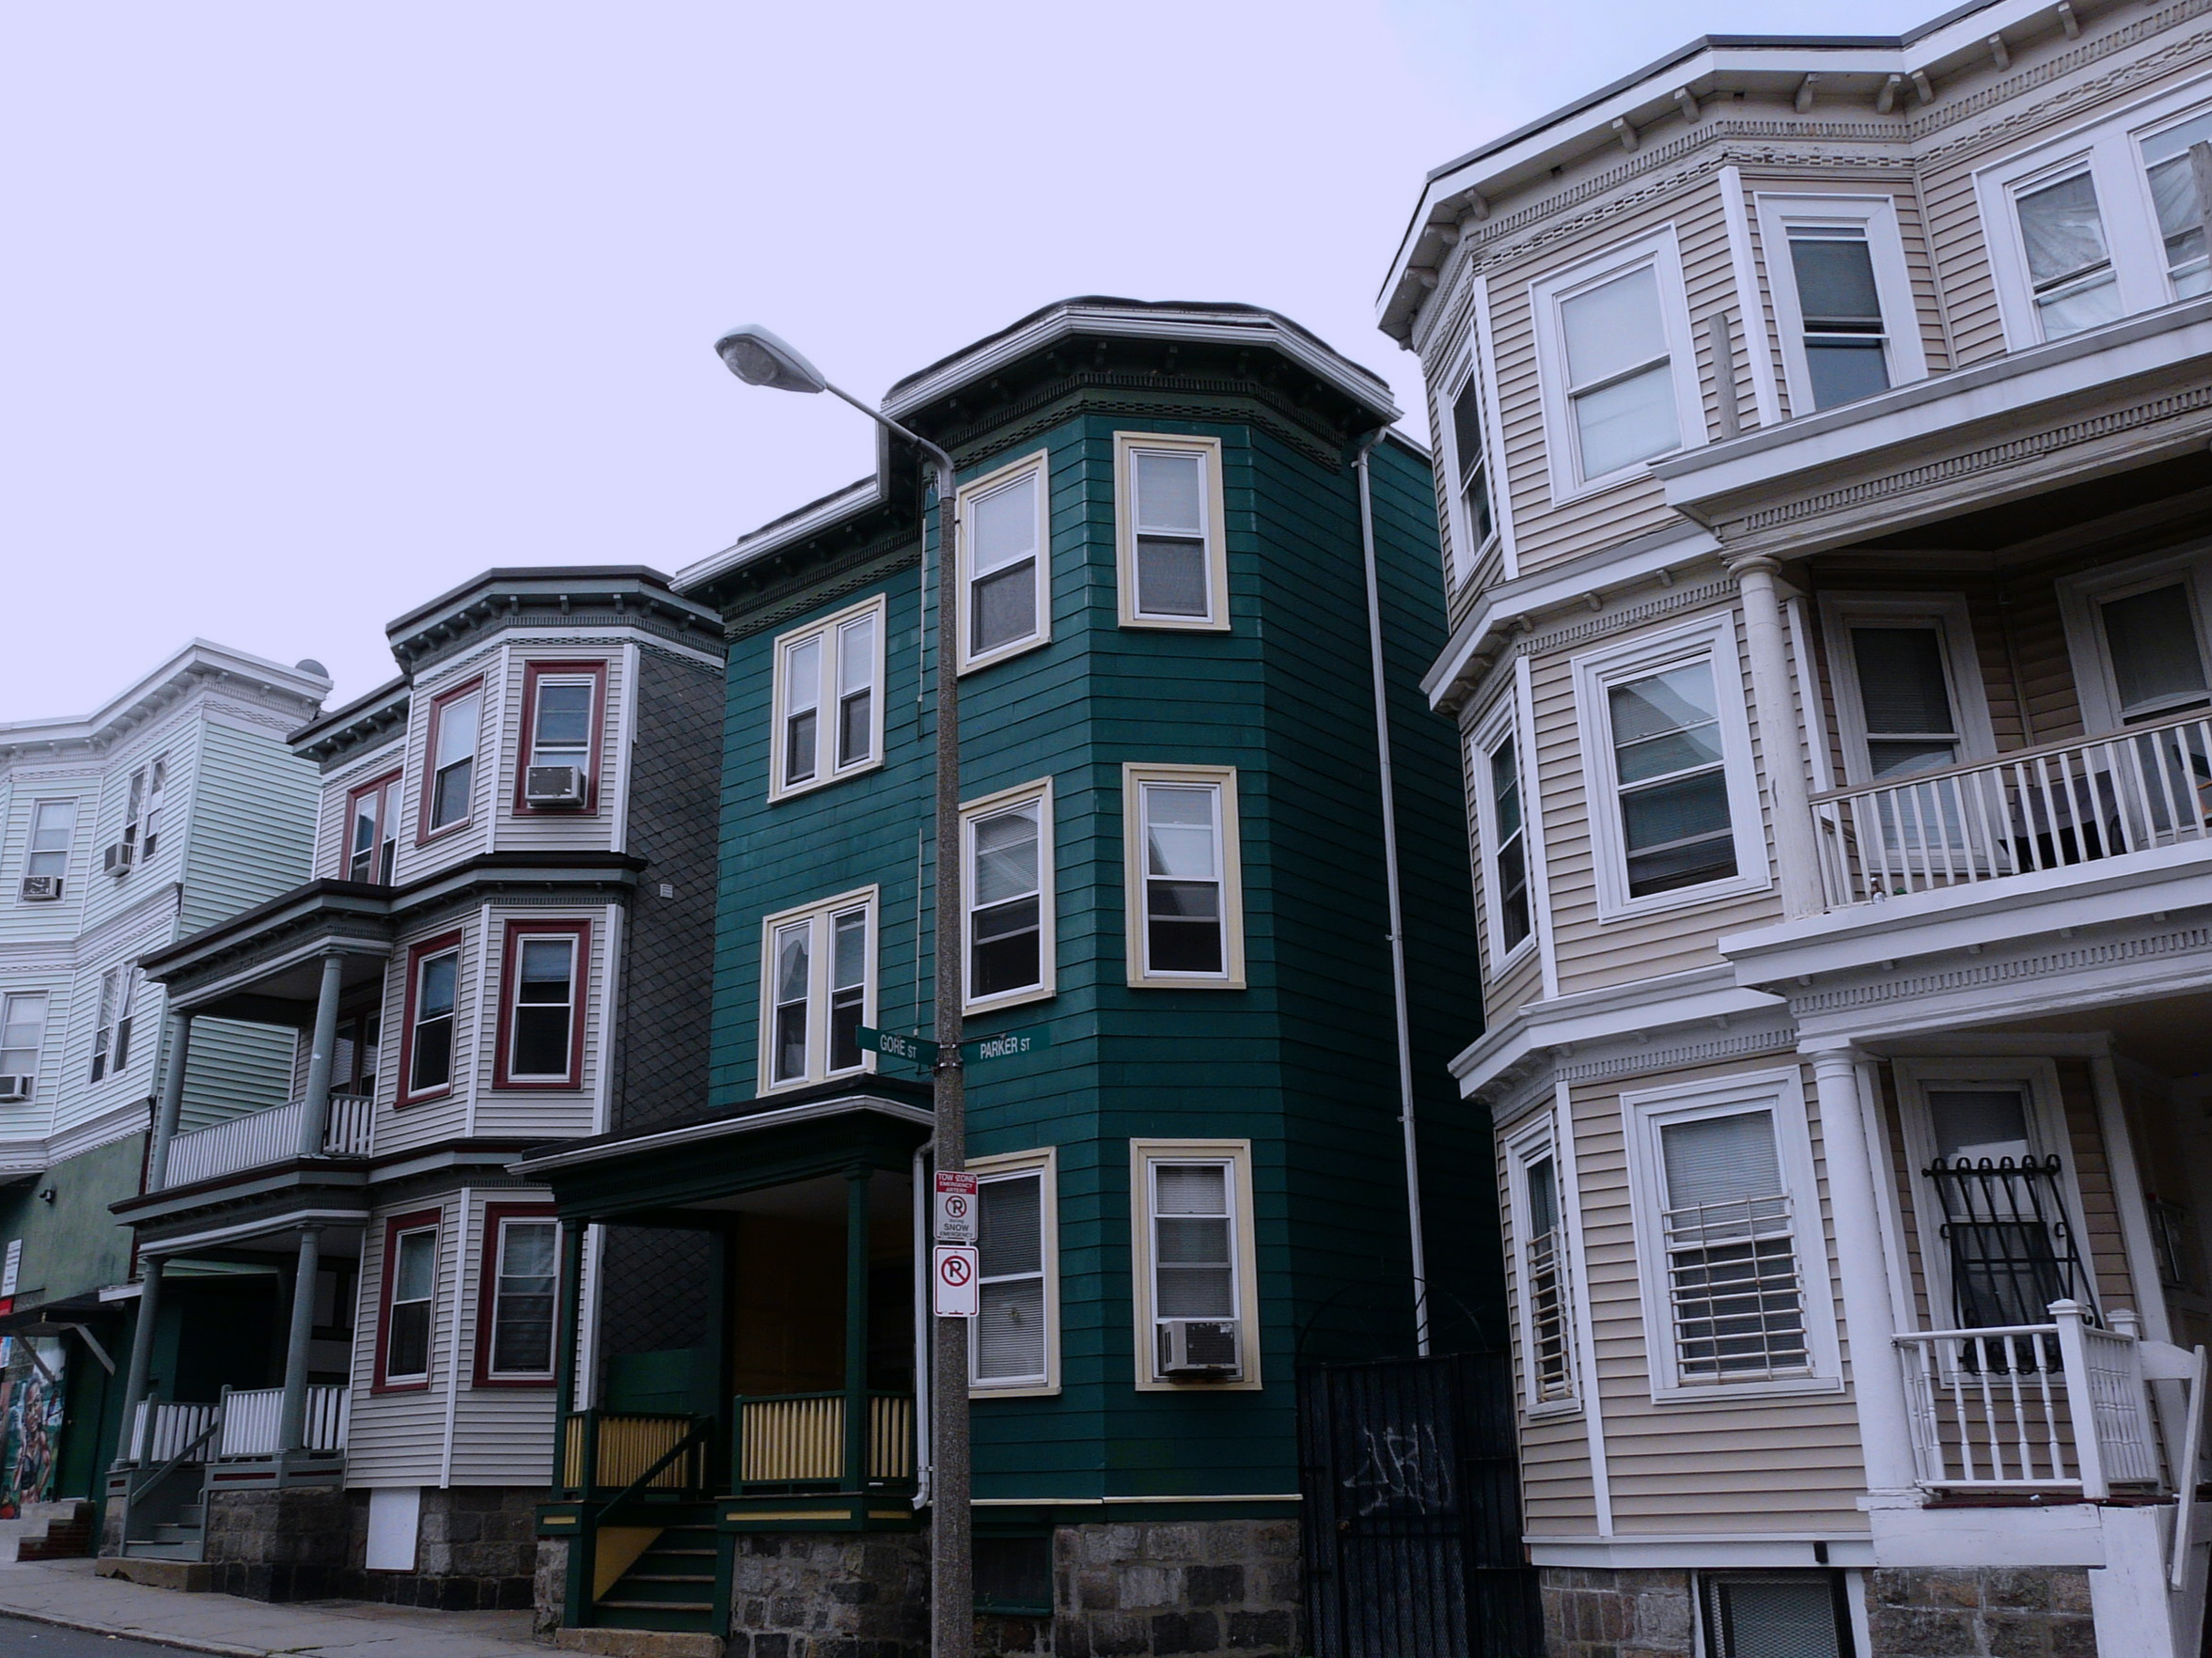 Zoning laws have changed so dramatically in Massachusetts that the housing shown here would not be possible to develop.